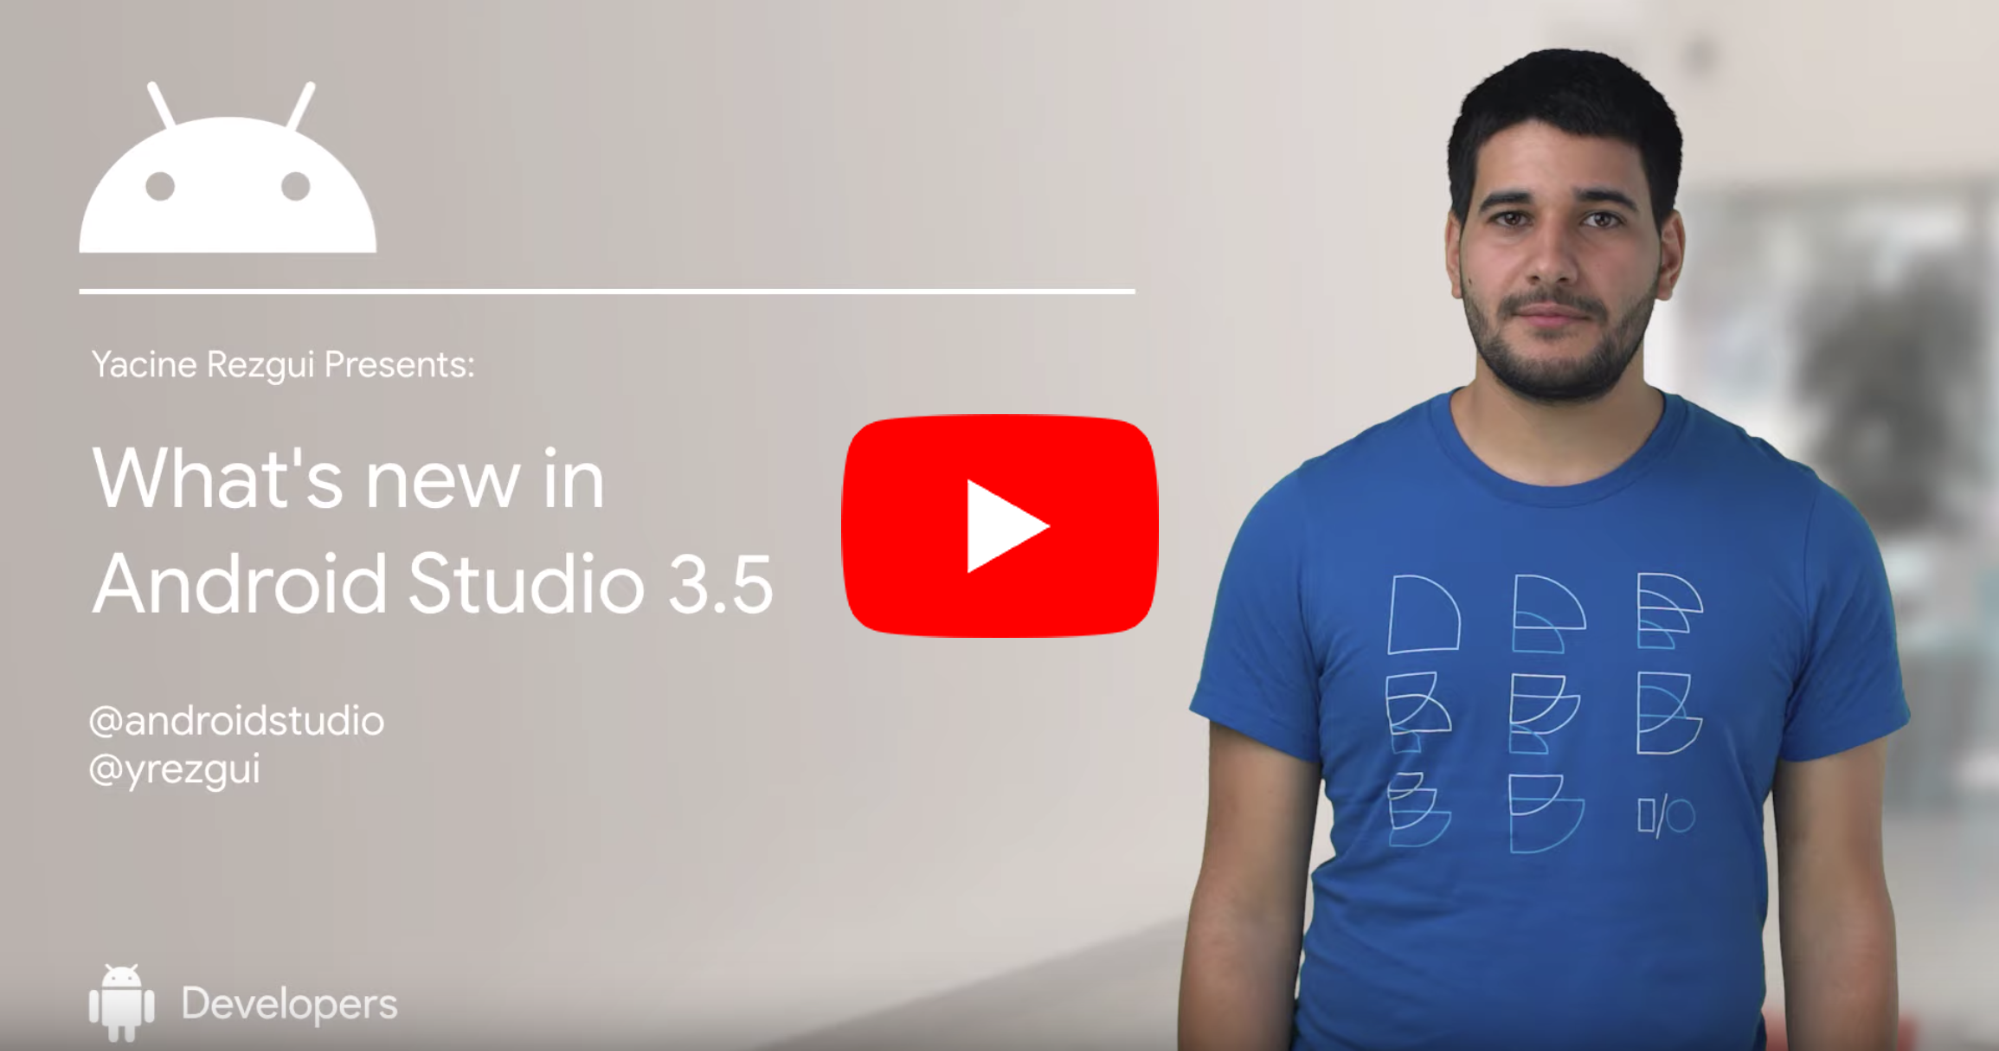 A better Android Studio